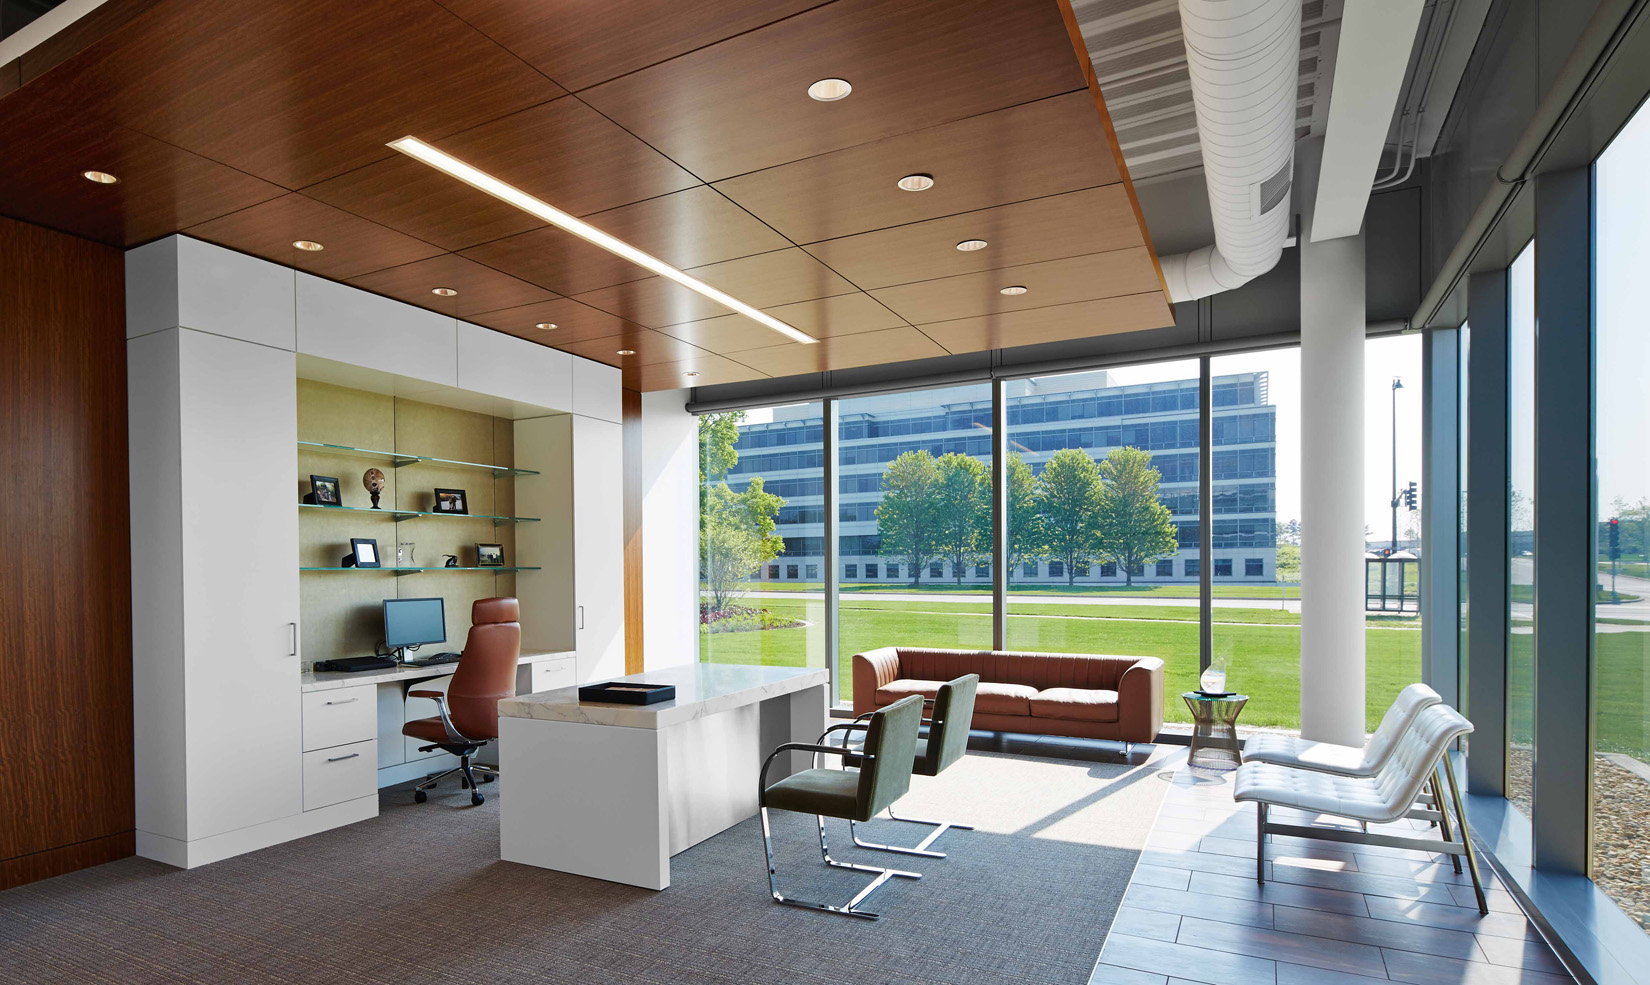 Design excellence awards american institute of architects for Design hub interior decoration llc